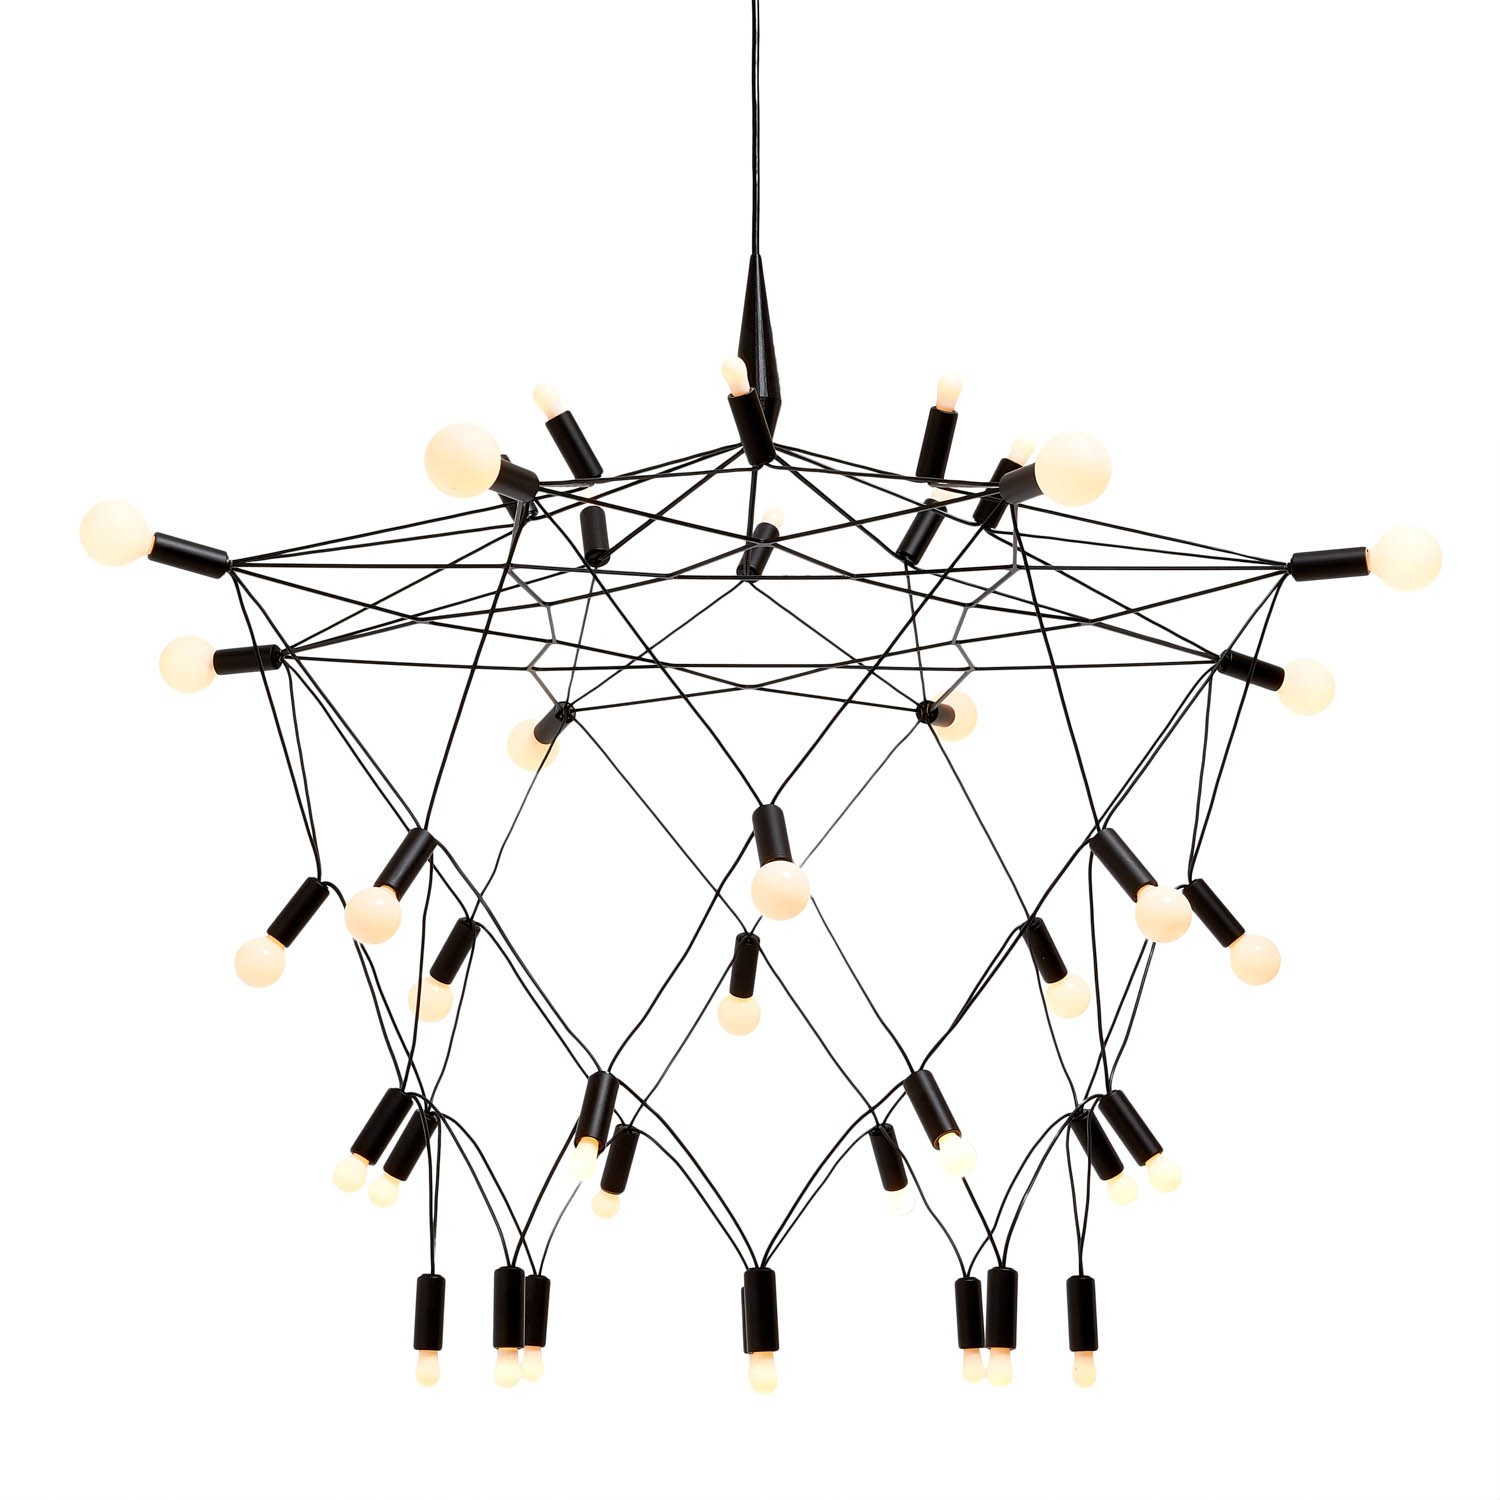 Admirable unique design of orbit chandelier with iron or stainless for ceiling lighting decorating ideas